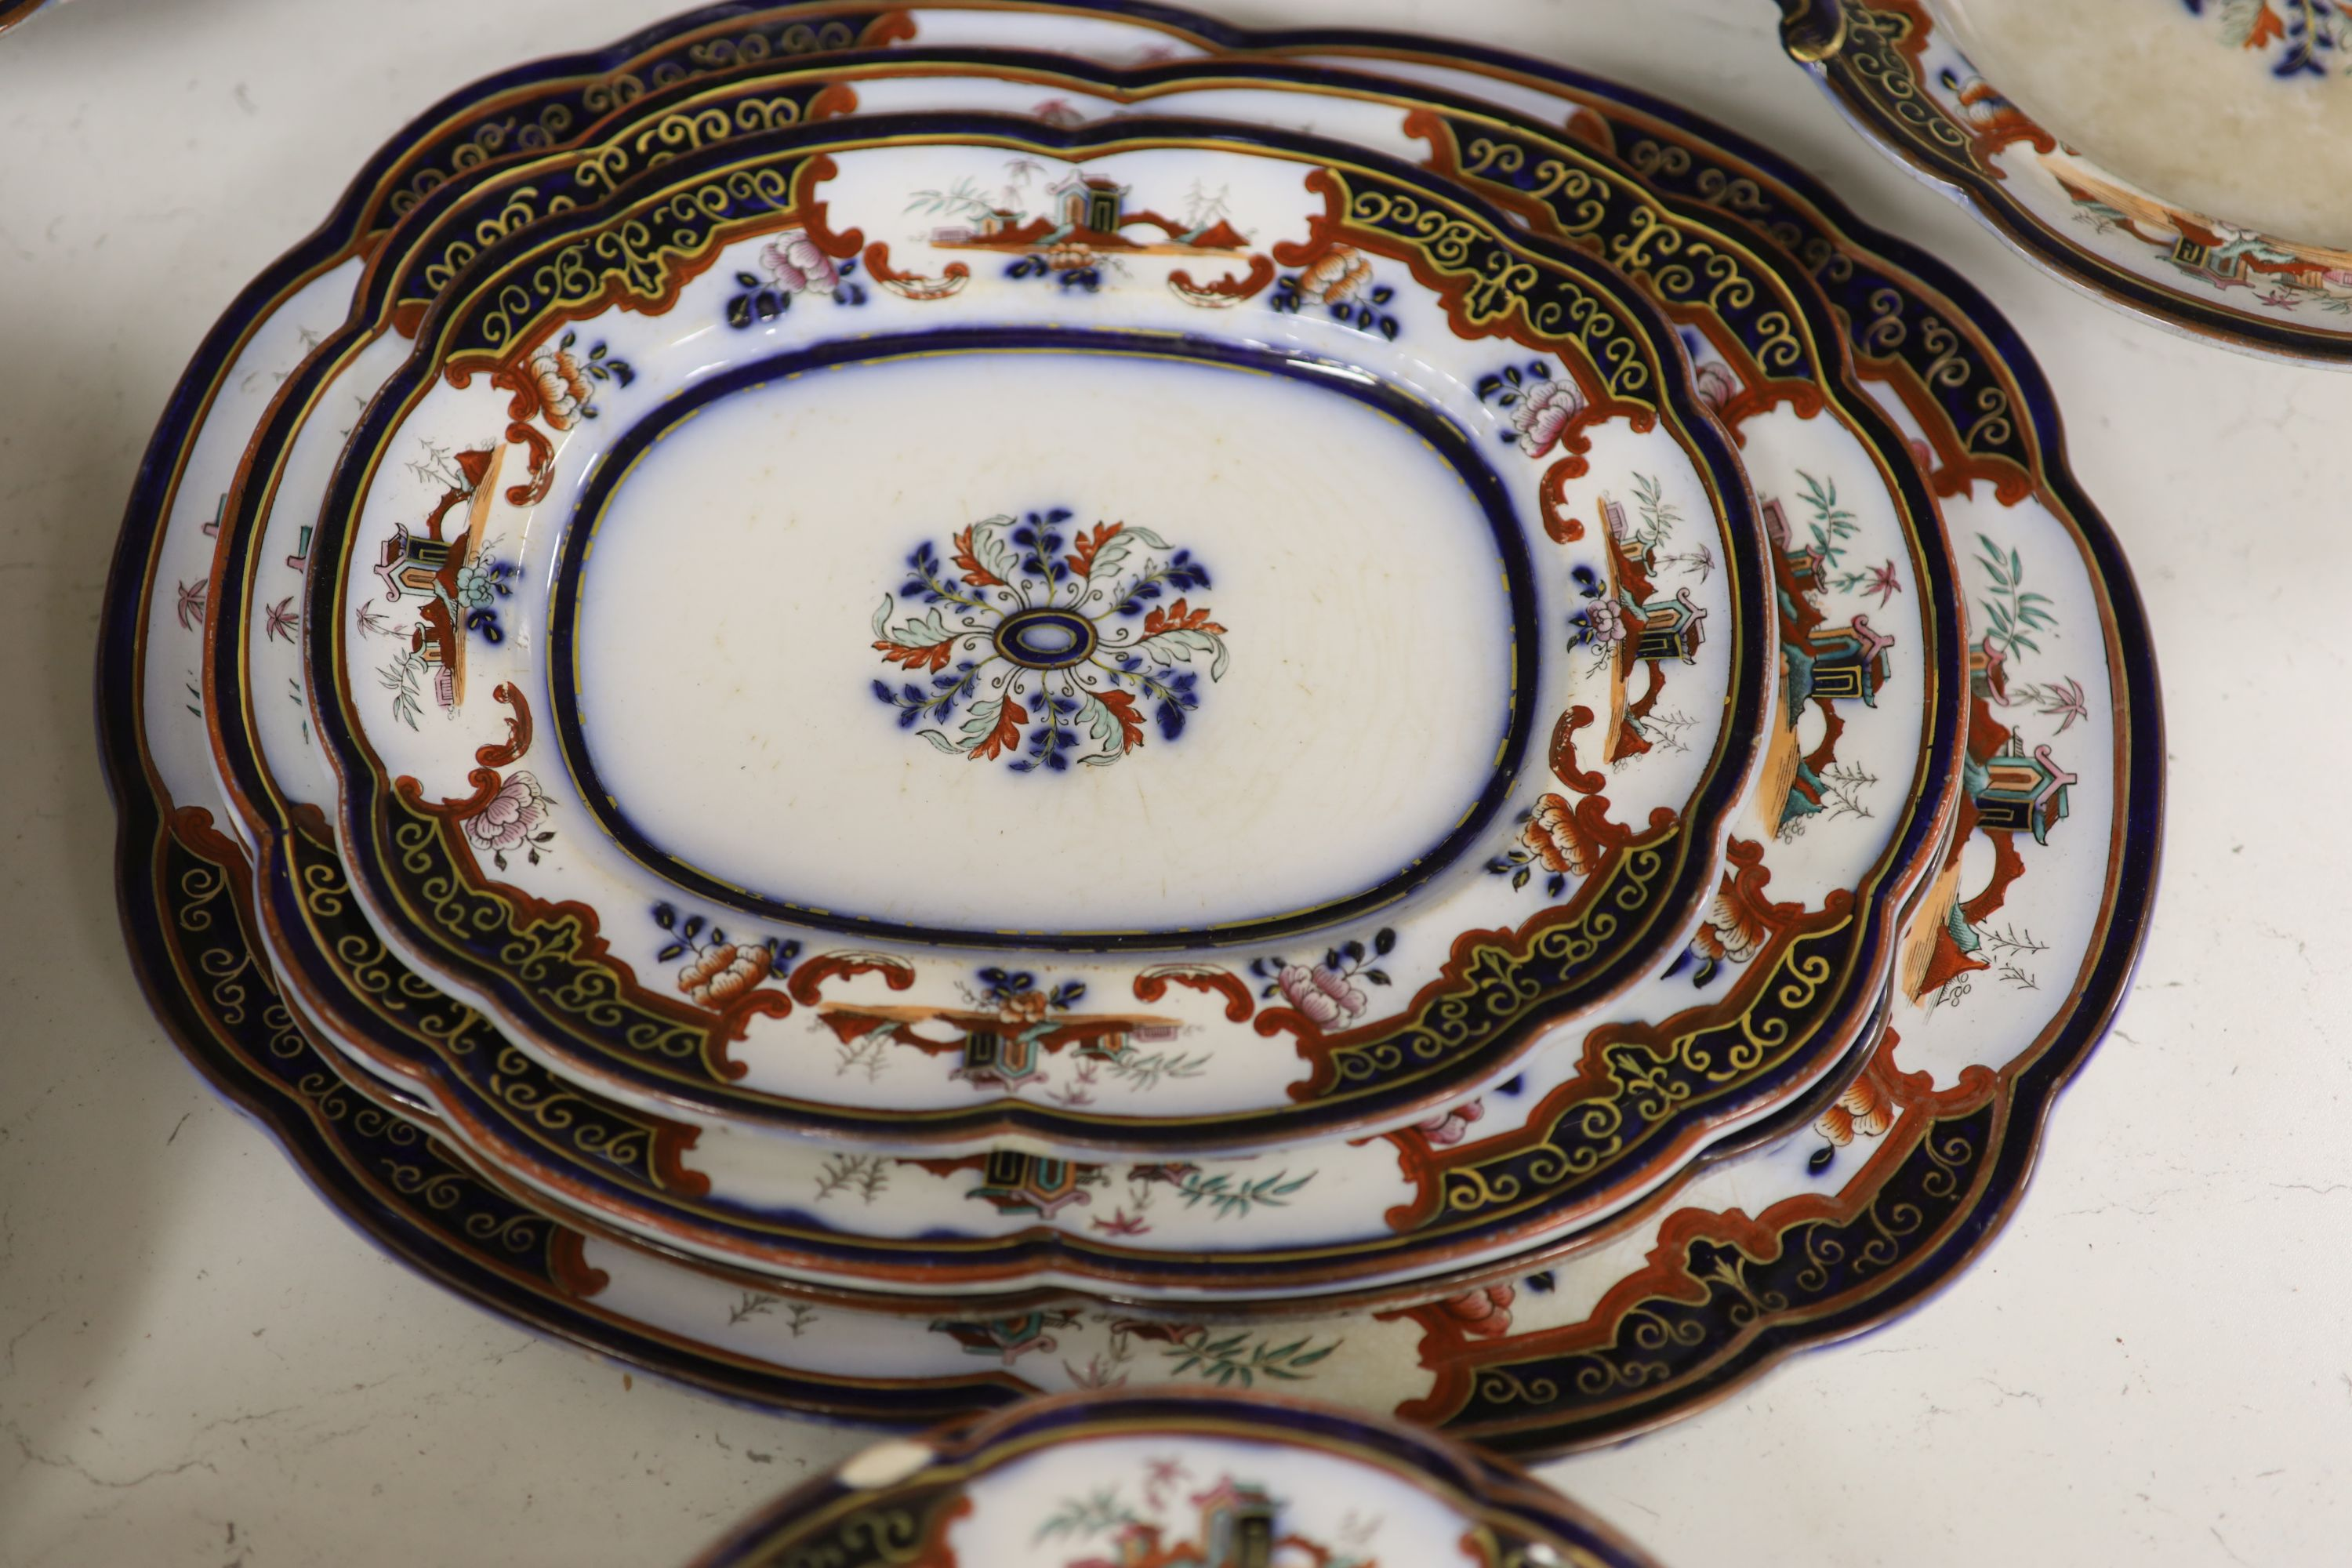 A 19th century earthenware dinner service - Image 7 of 7